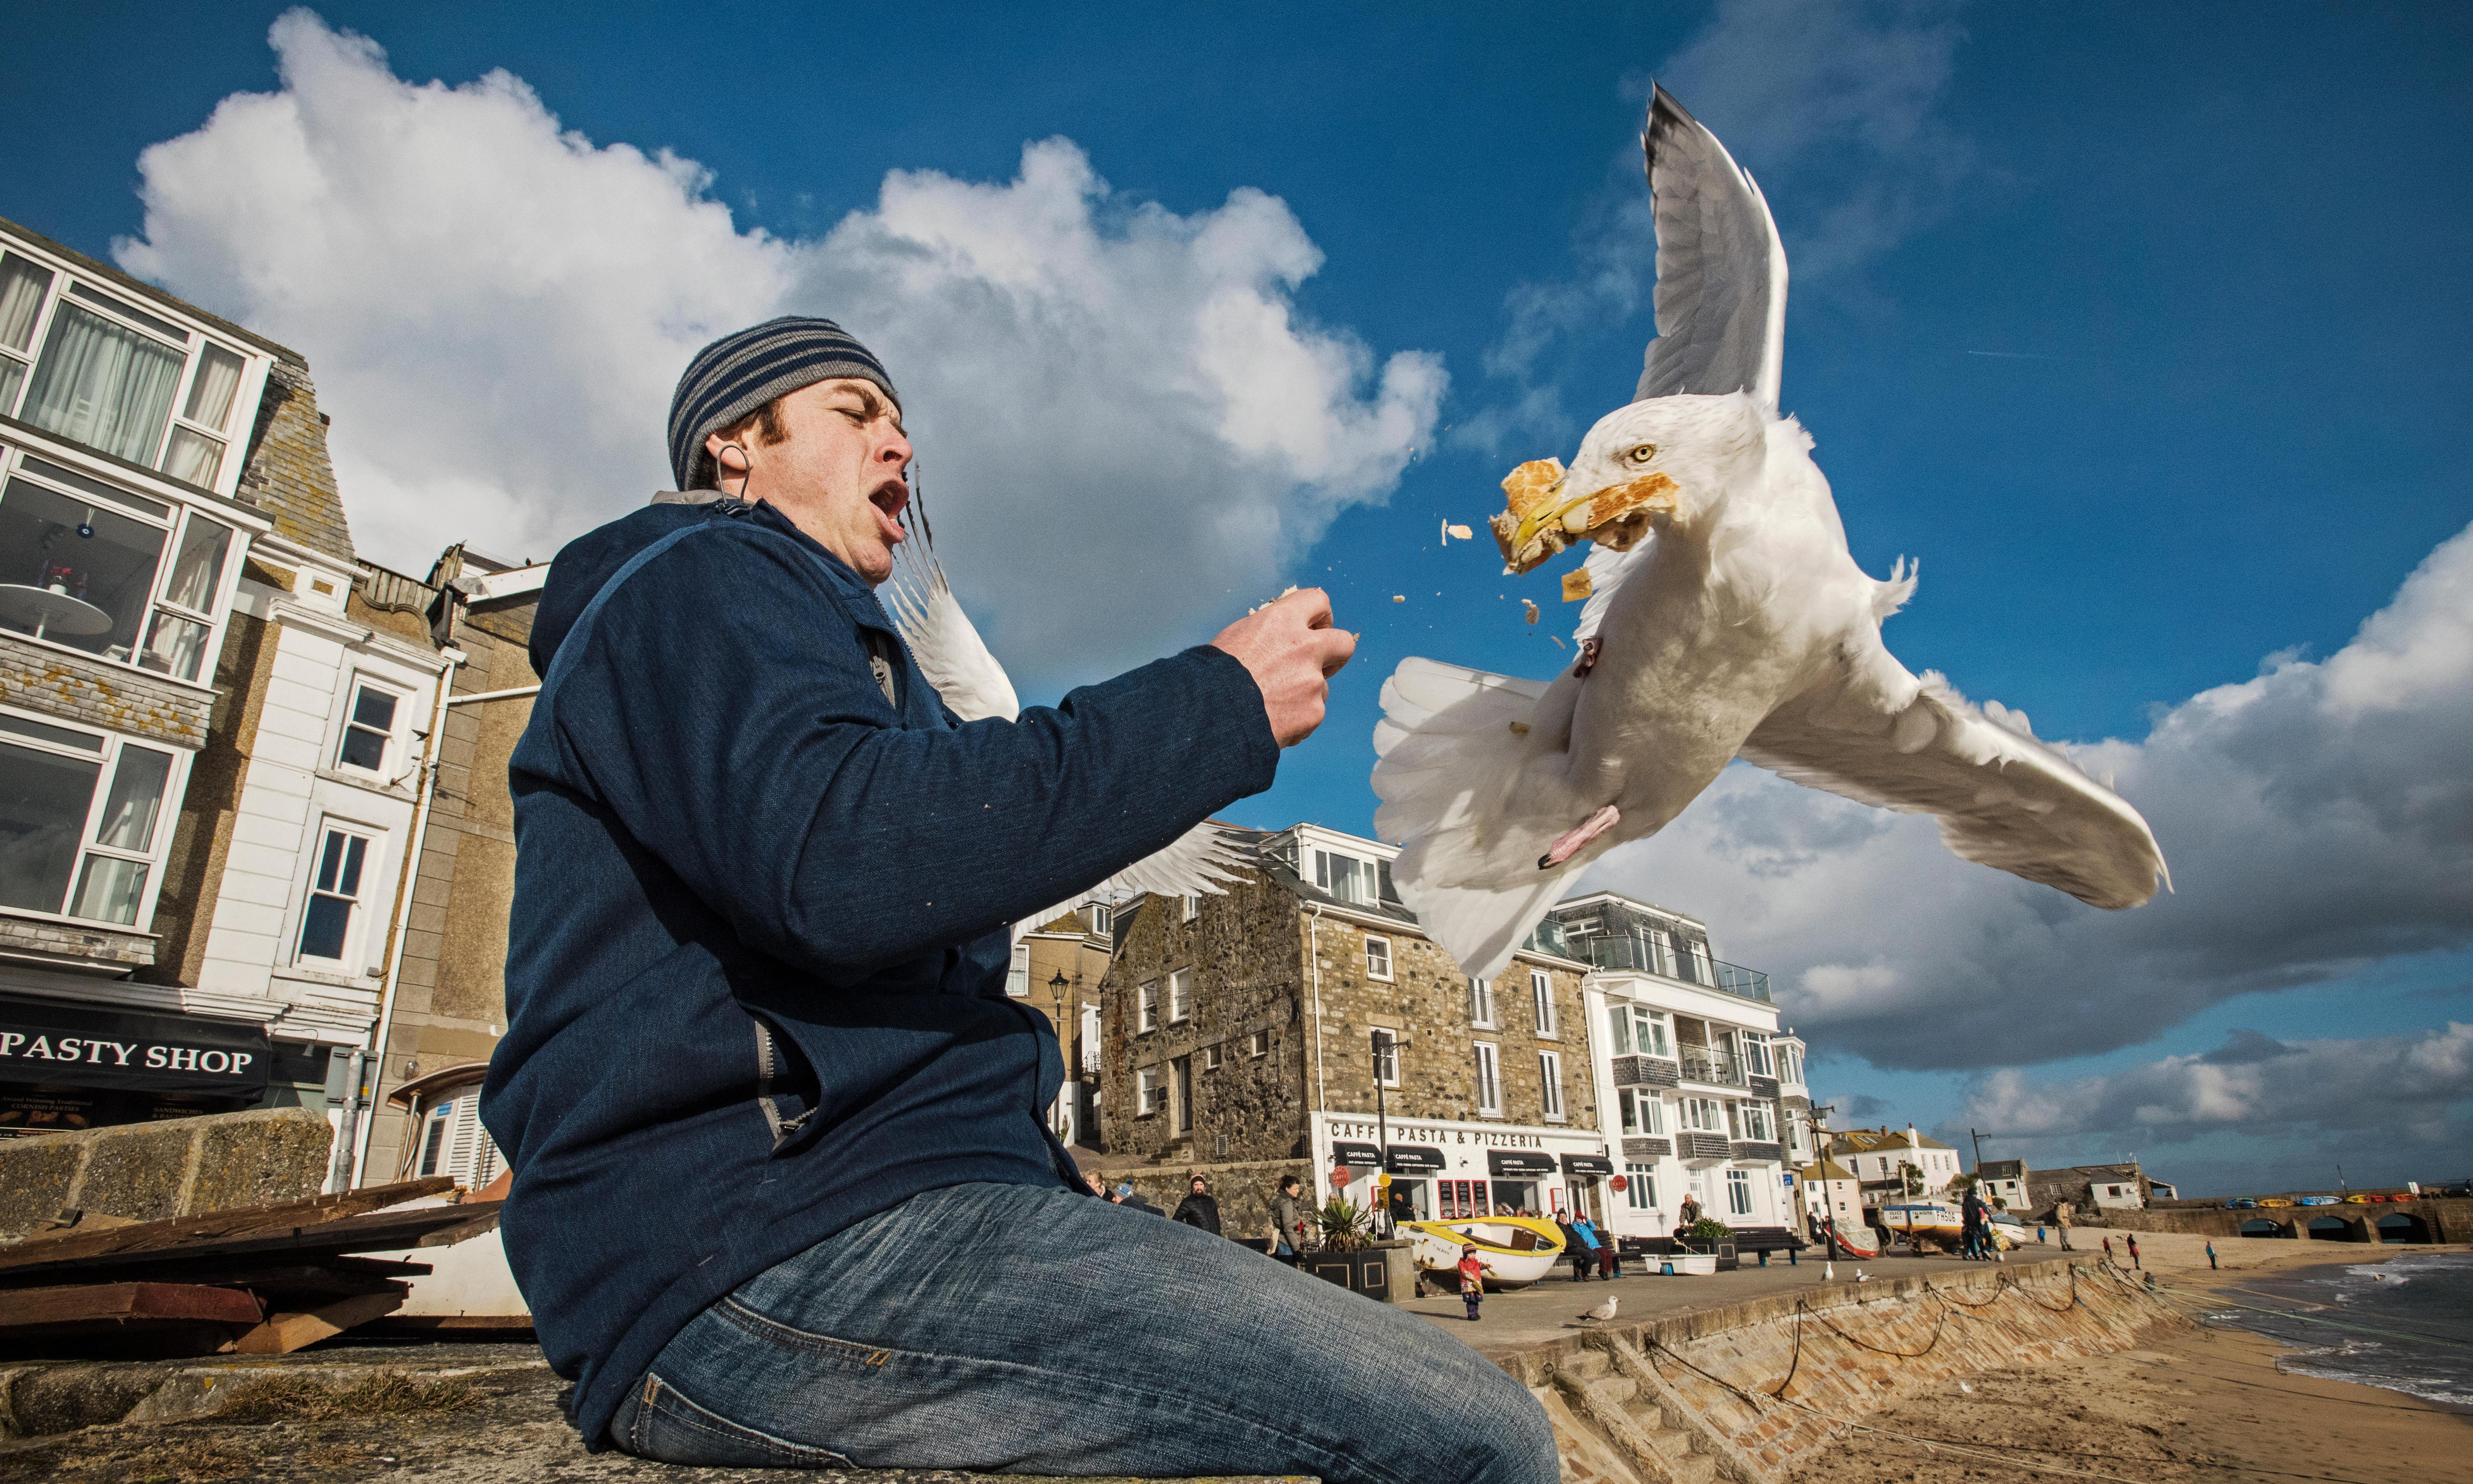 Gulls observe humans to home in on tasty scraps, study finds